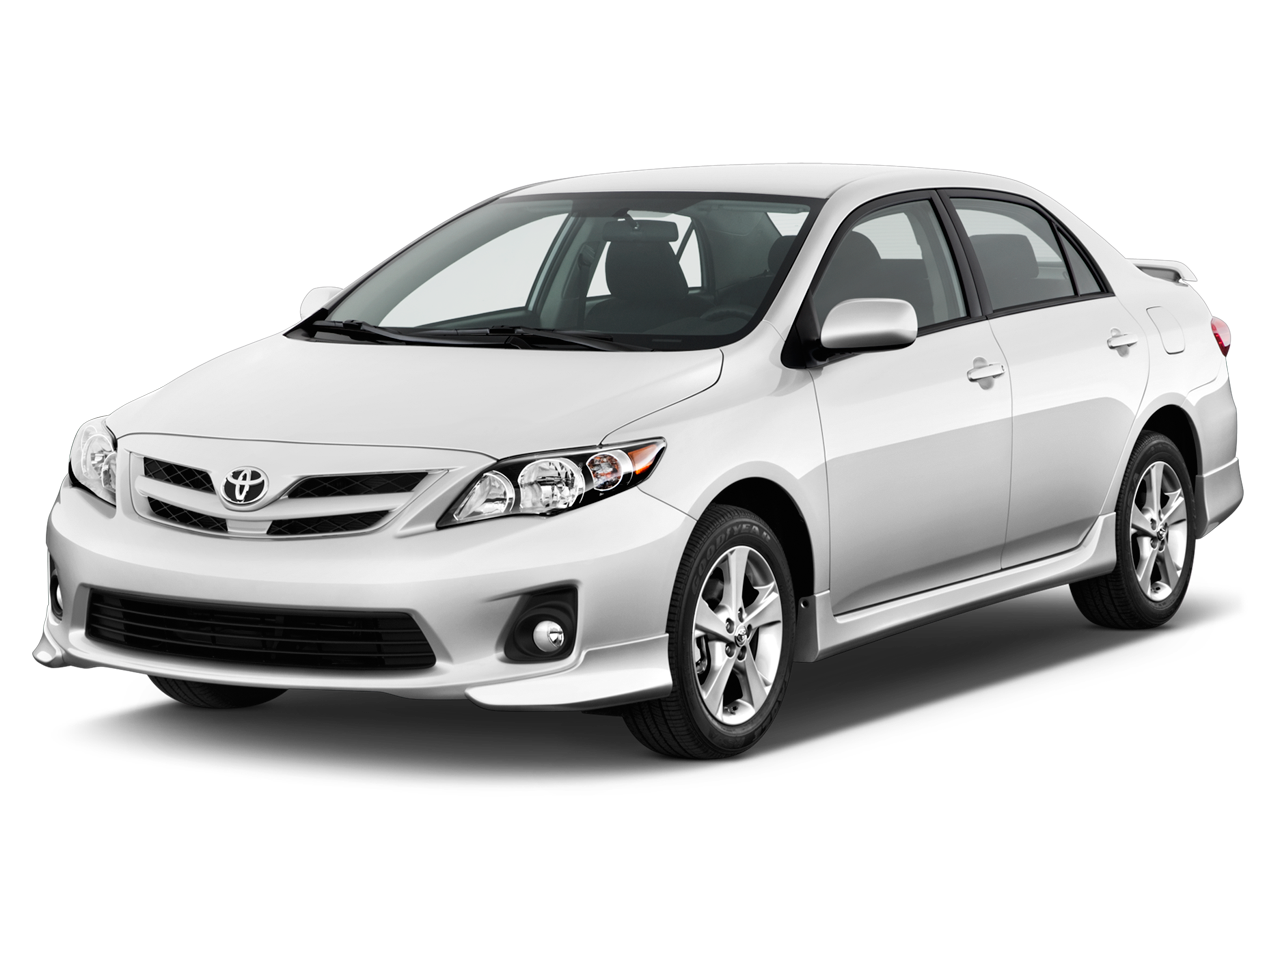 Download PNG image - Toyota Car Png Picture in different sizes - Toyota PNG